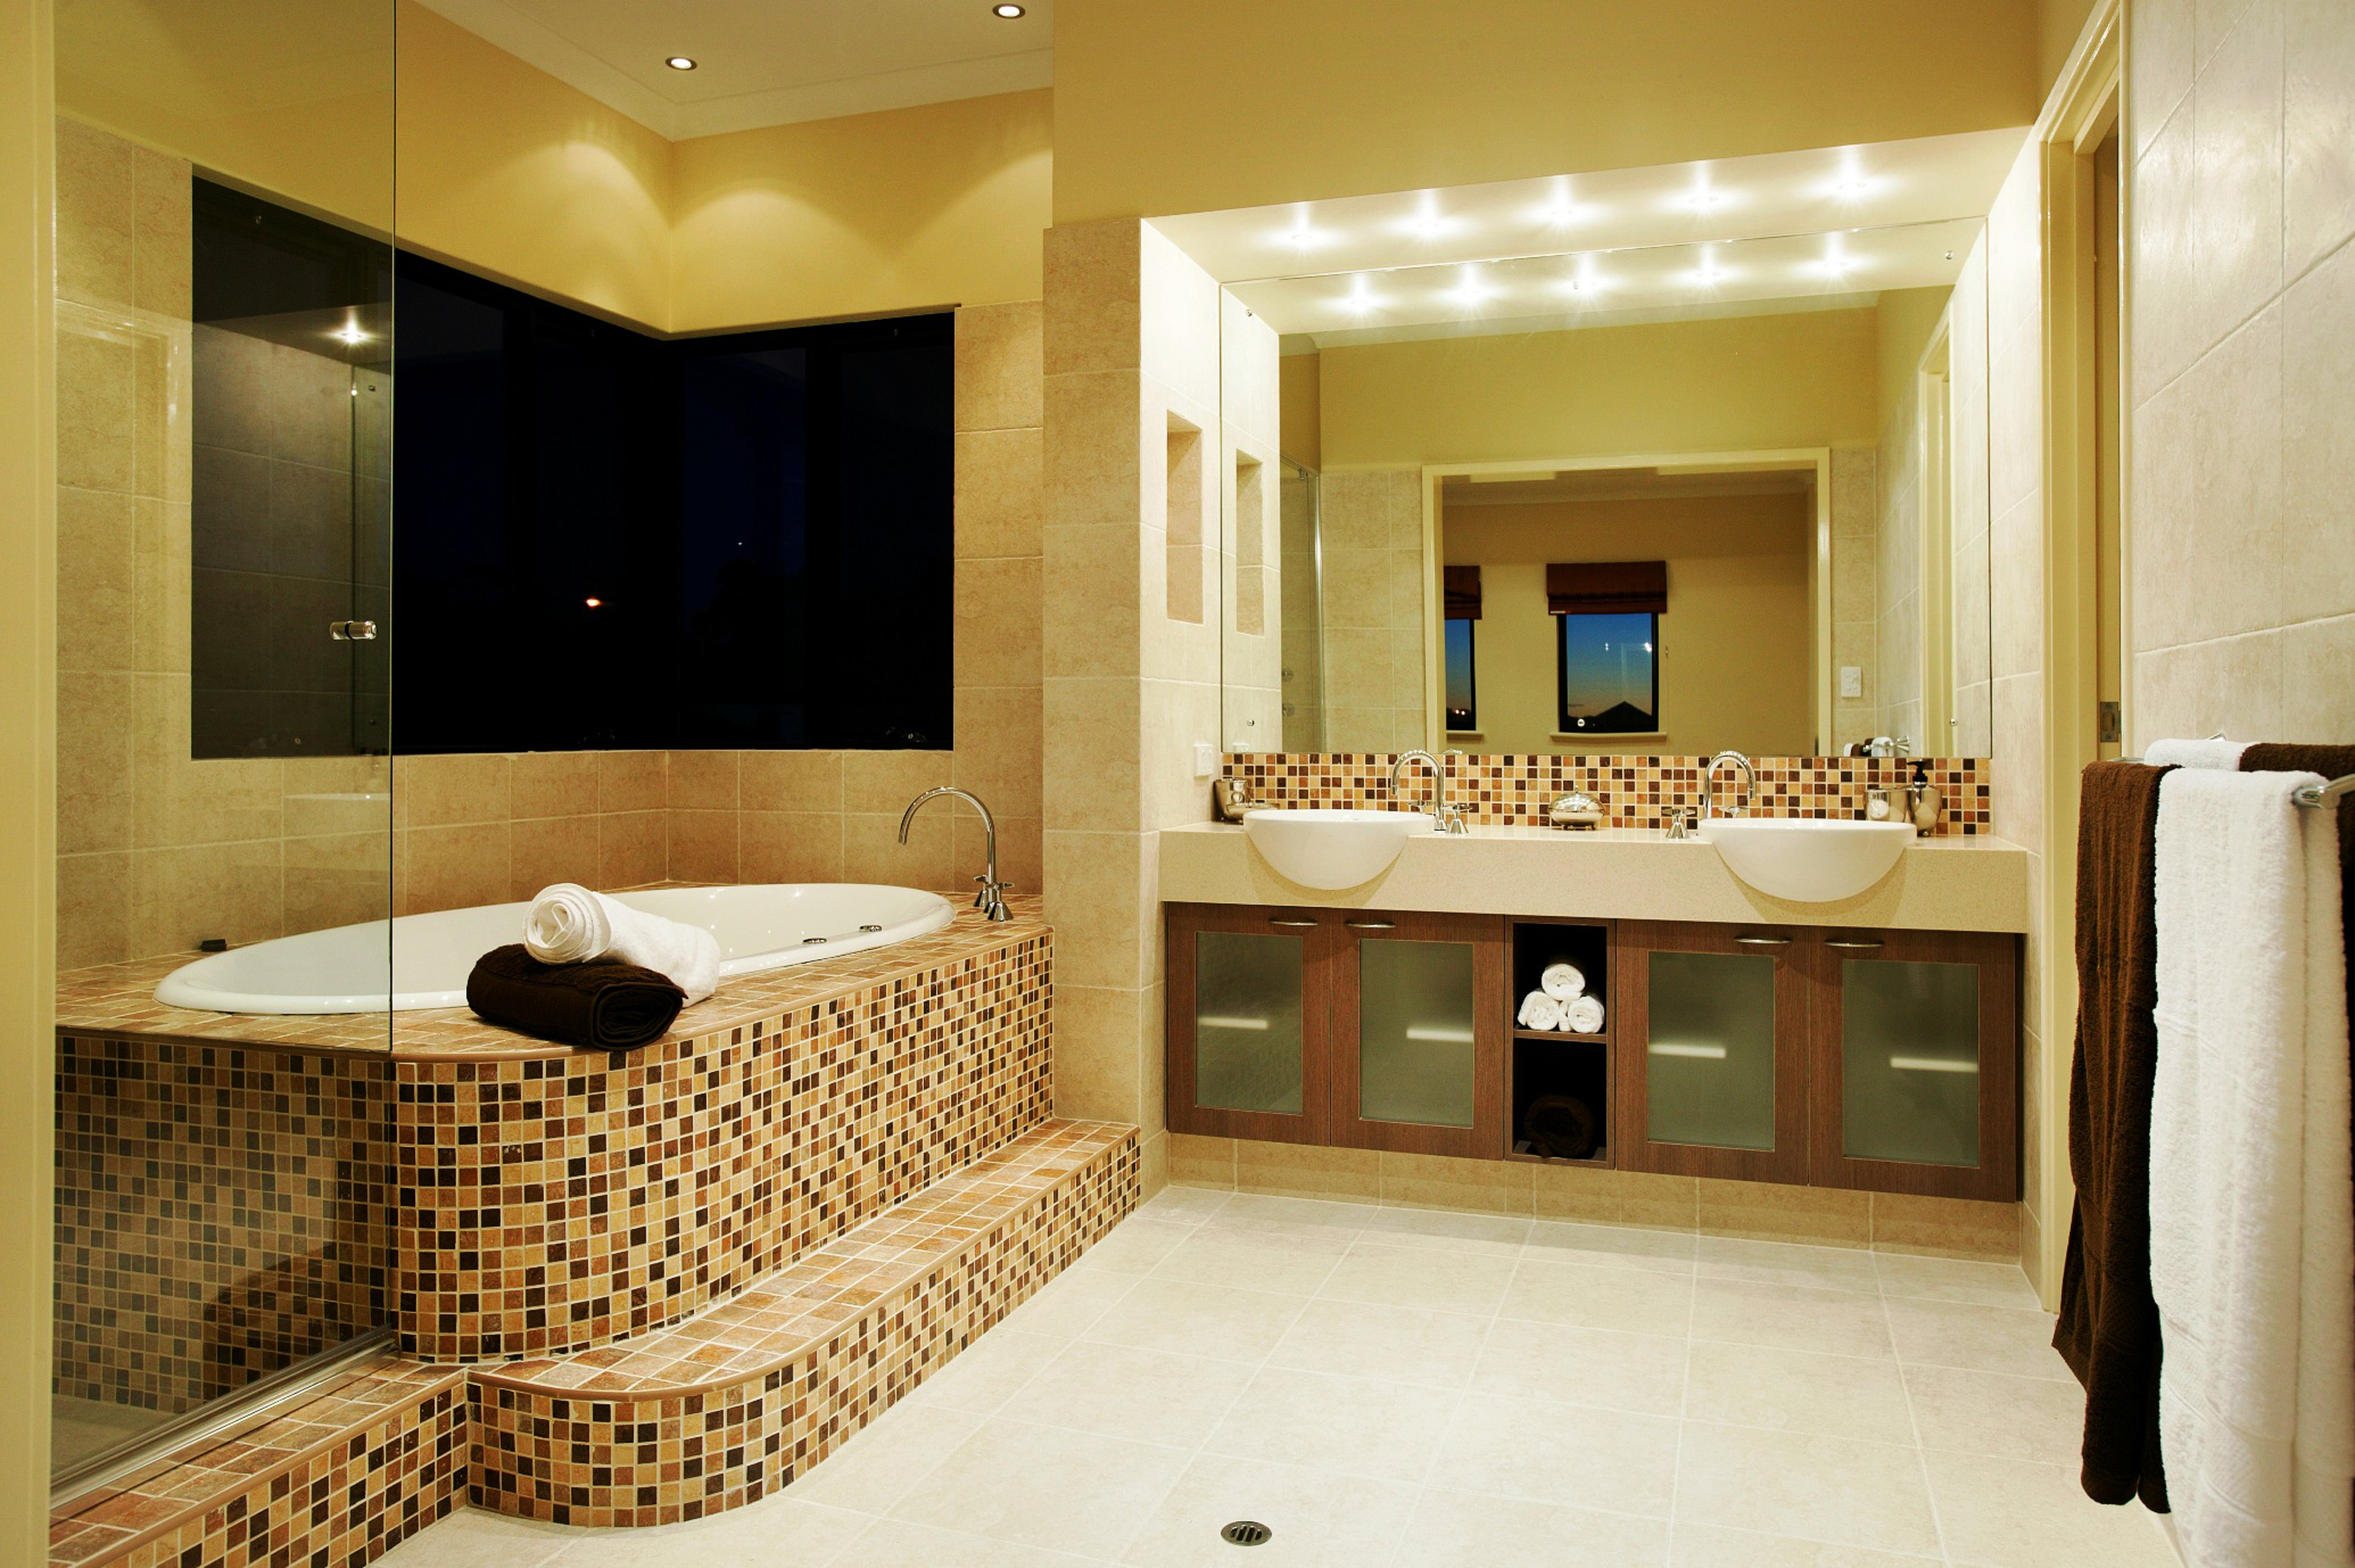 Luxurious Remodel Bathroom Idea With Brown Wall Brown White Bathtub And Black White Towels Elegant Remodel Bathroom Ideas (Image 27 of 123)